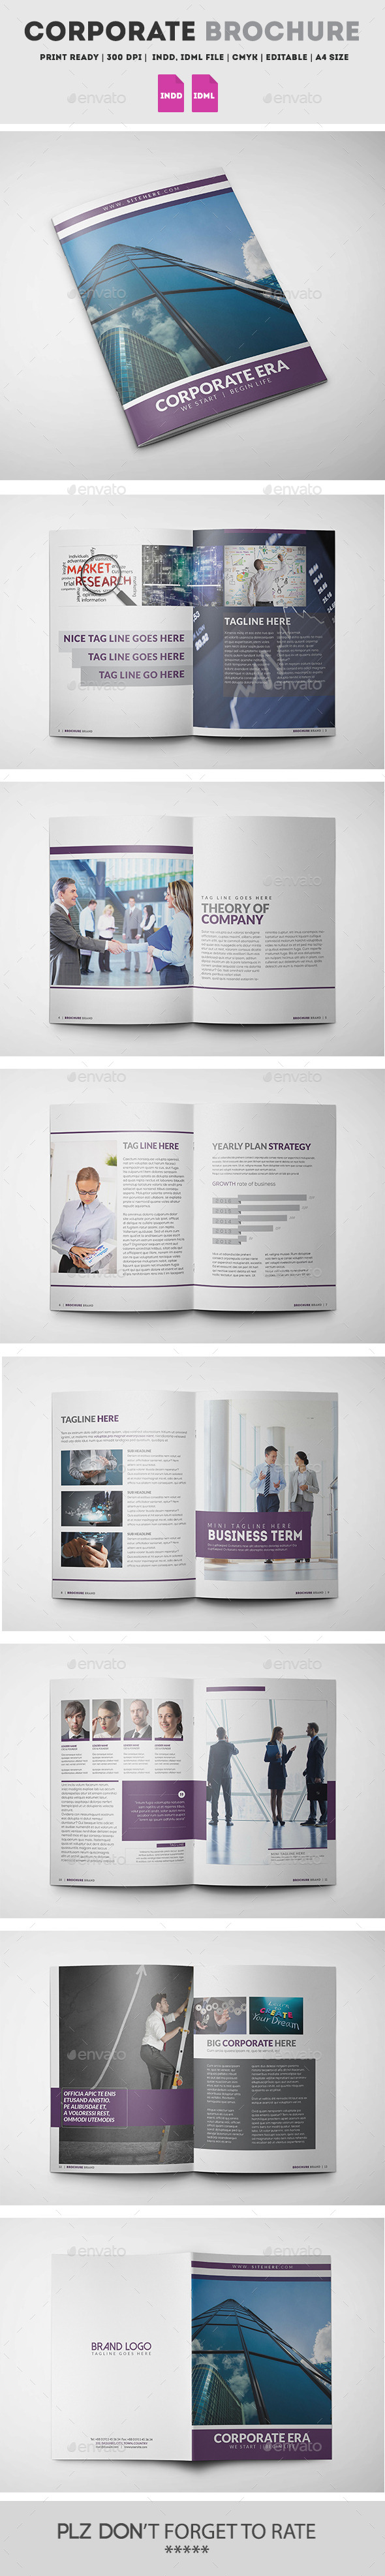 GraphicRiver Corporate Brochure Template 11810069